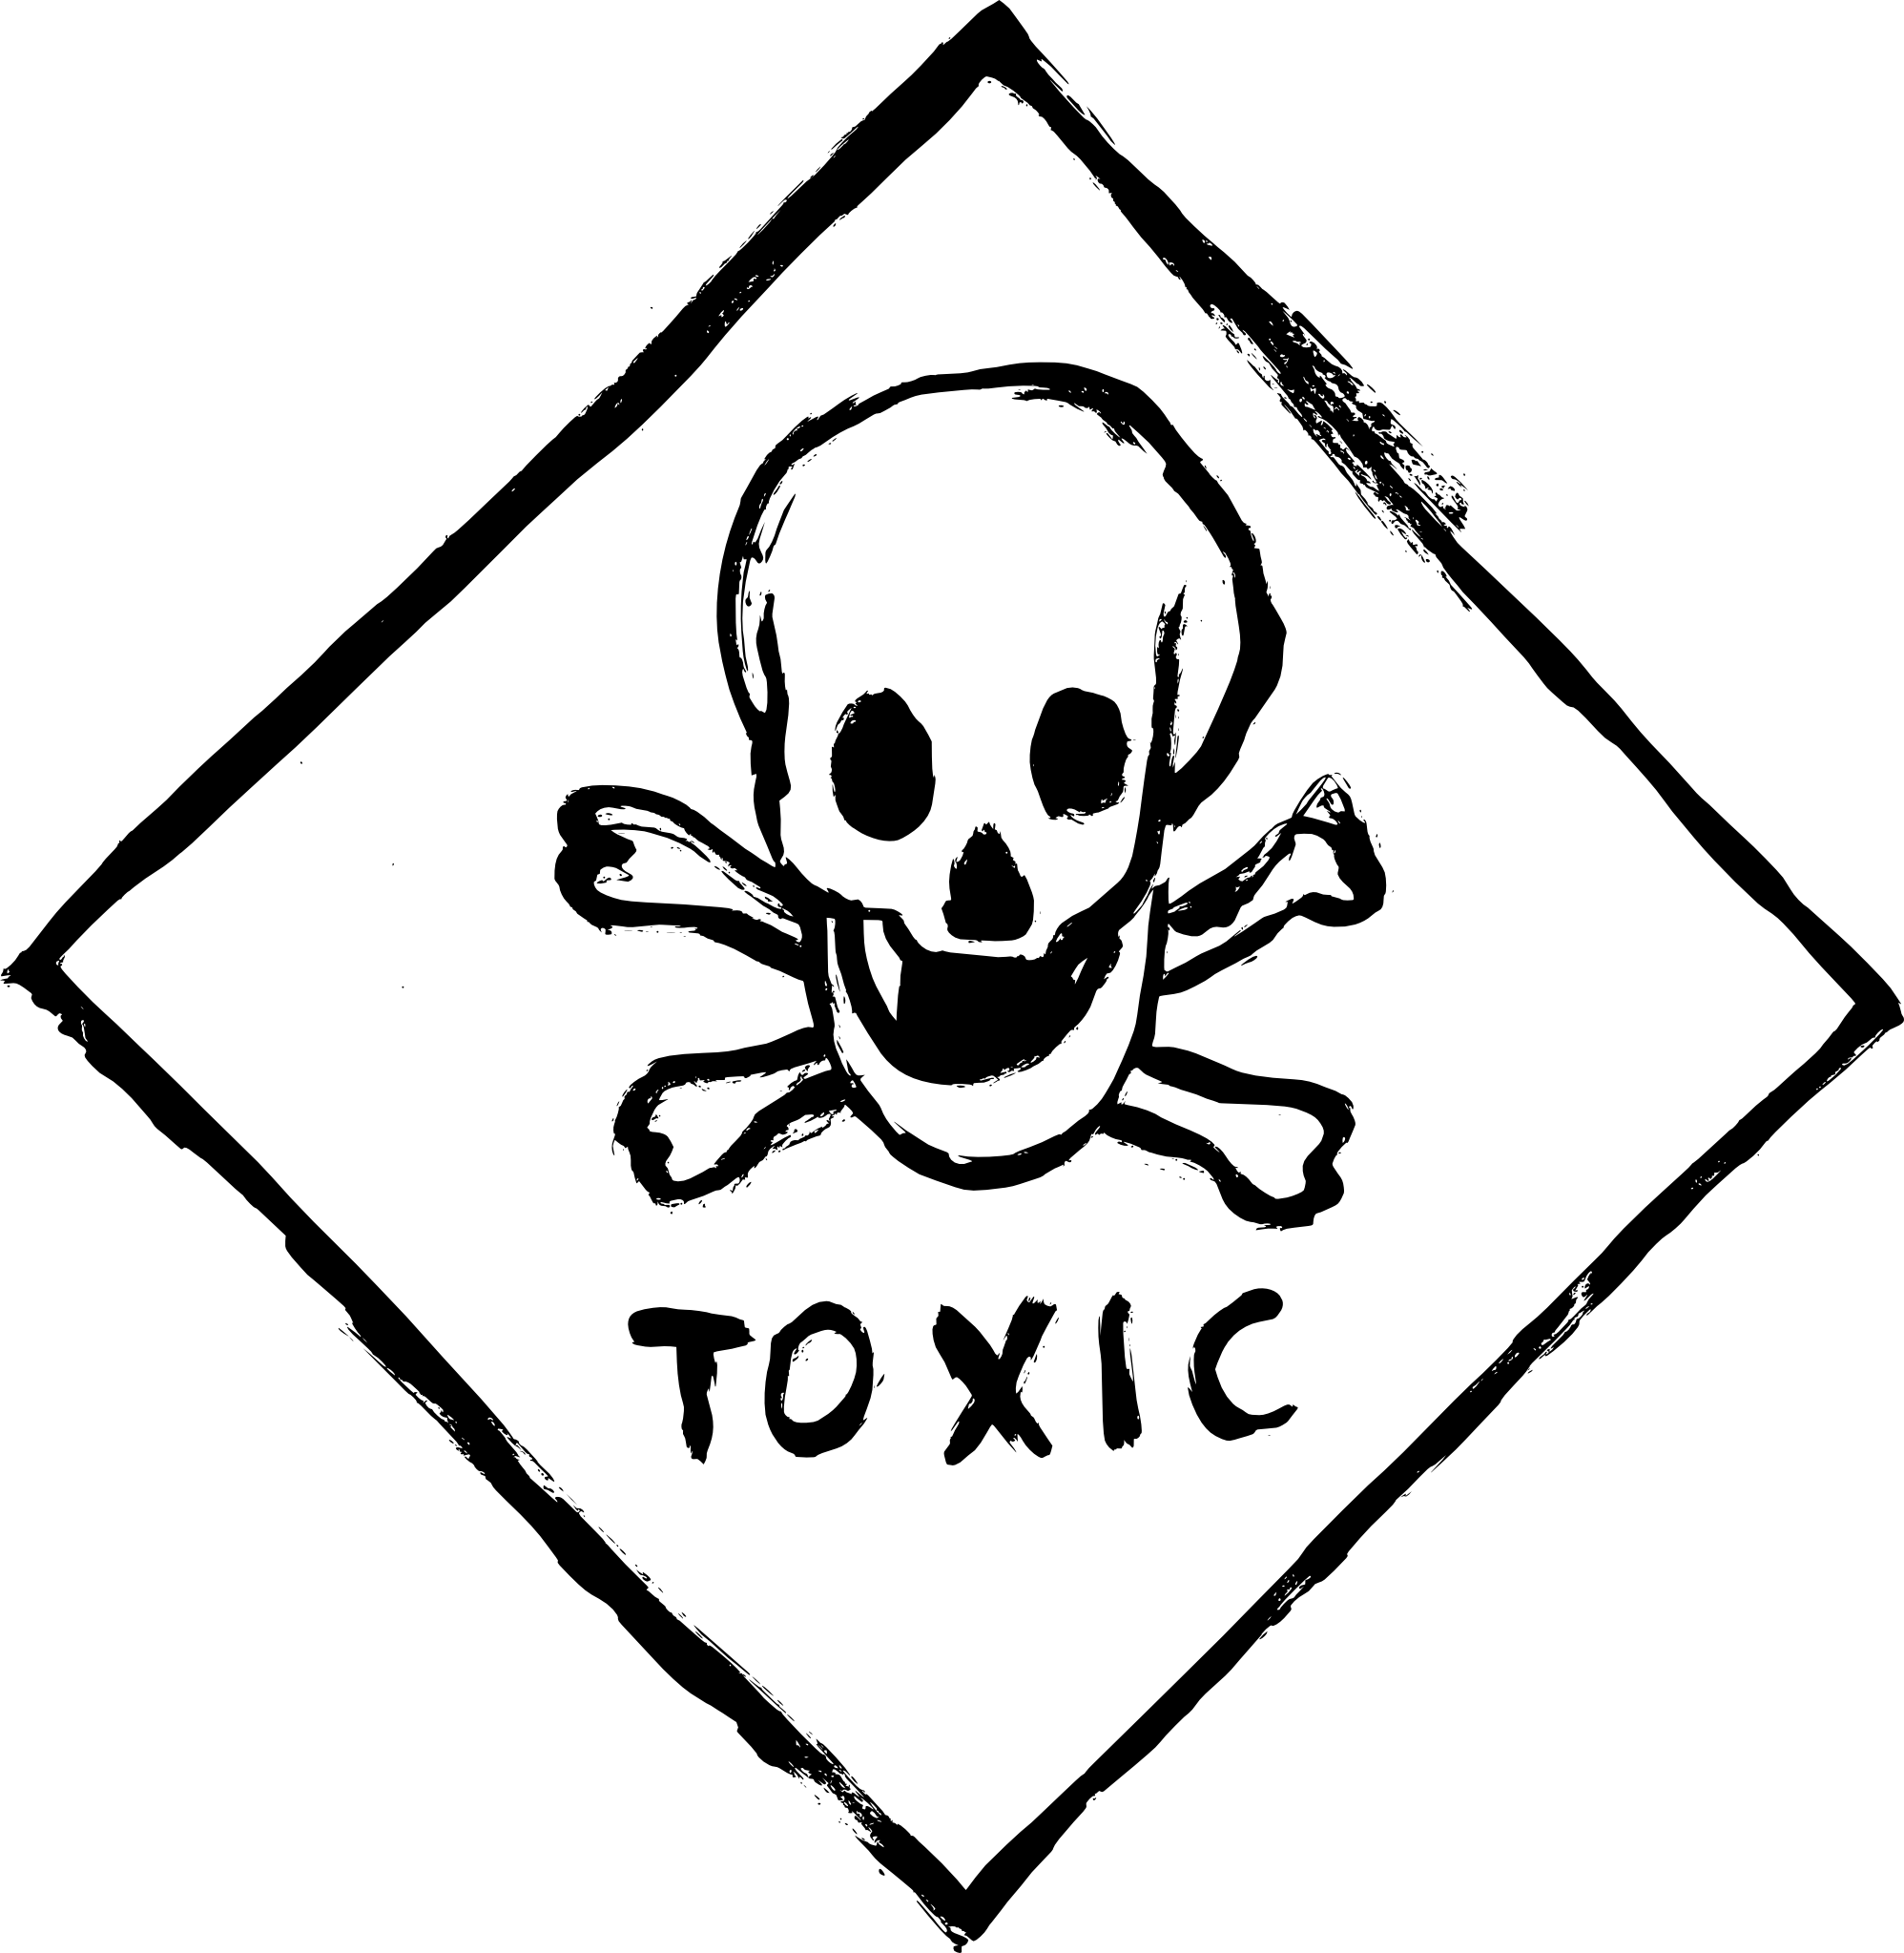 4 grunge toxic sign png transparent onlygfx free download grunge toxic sign 1g biocorpaavc Images